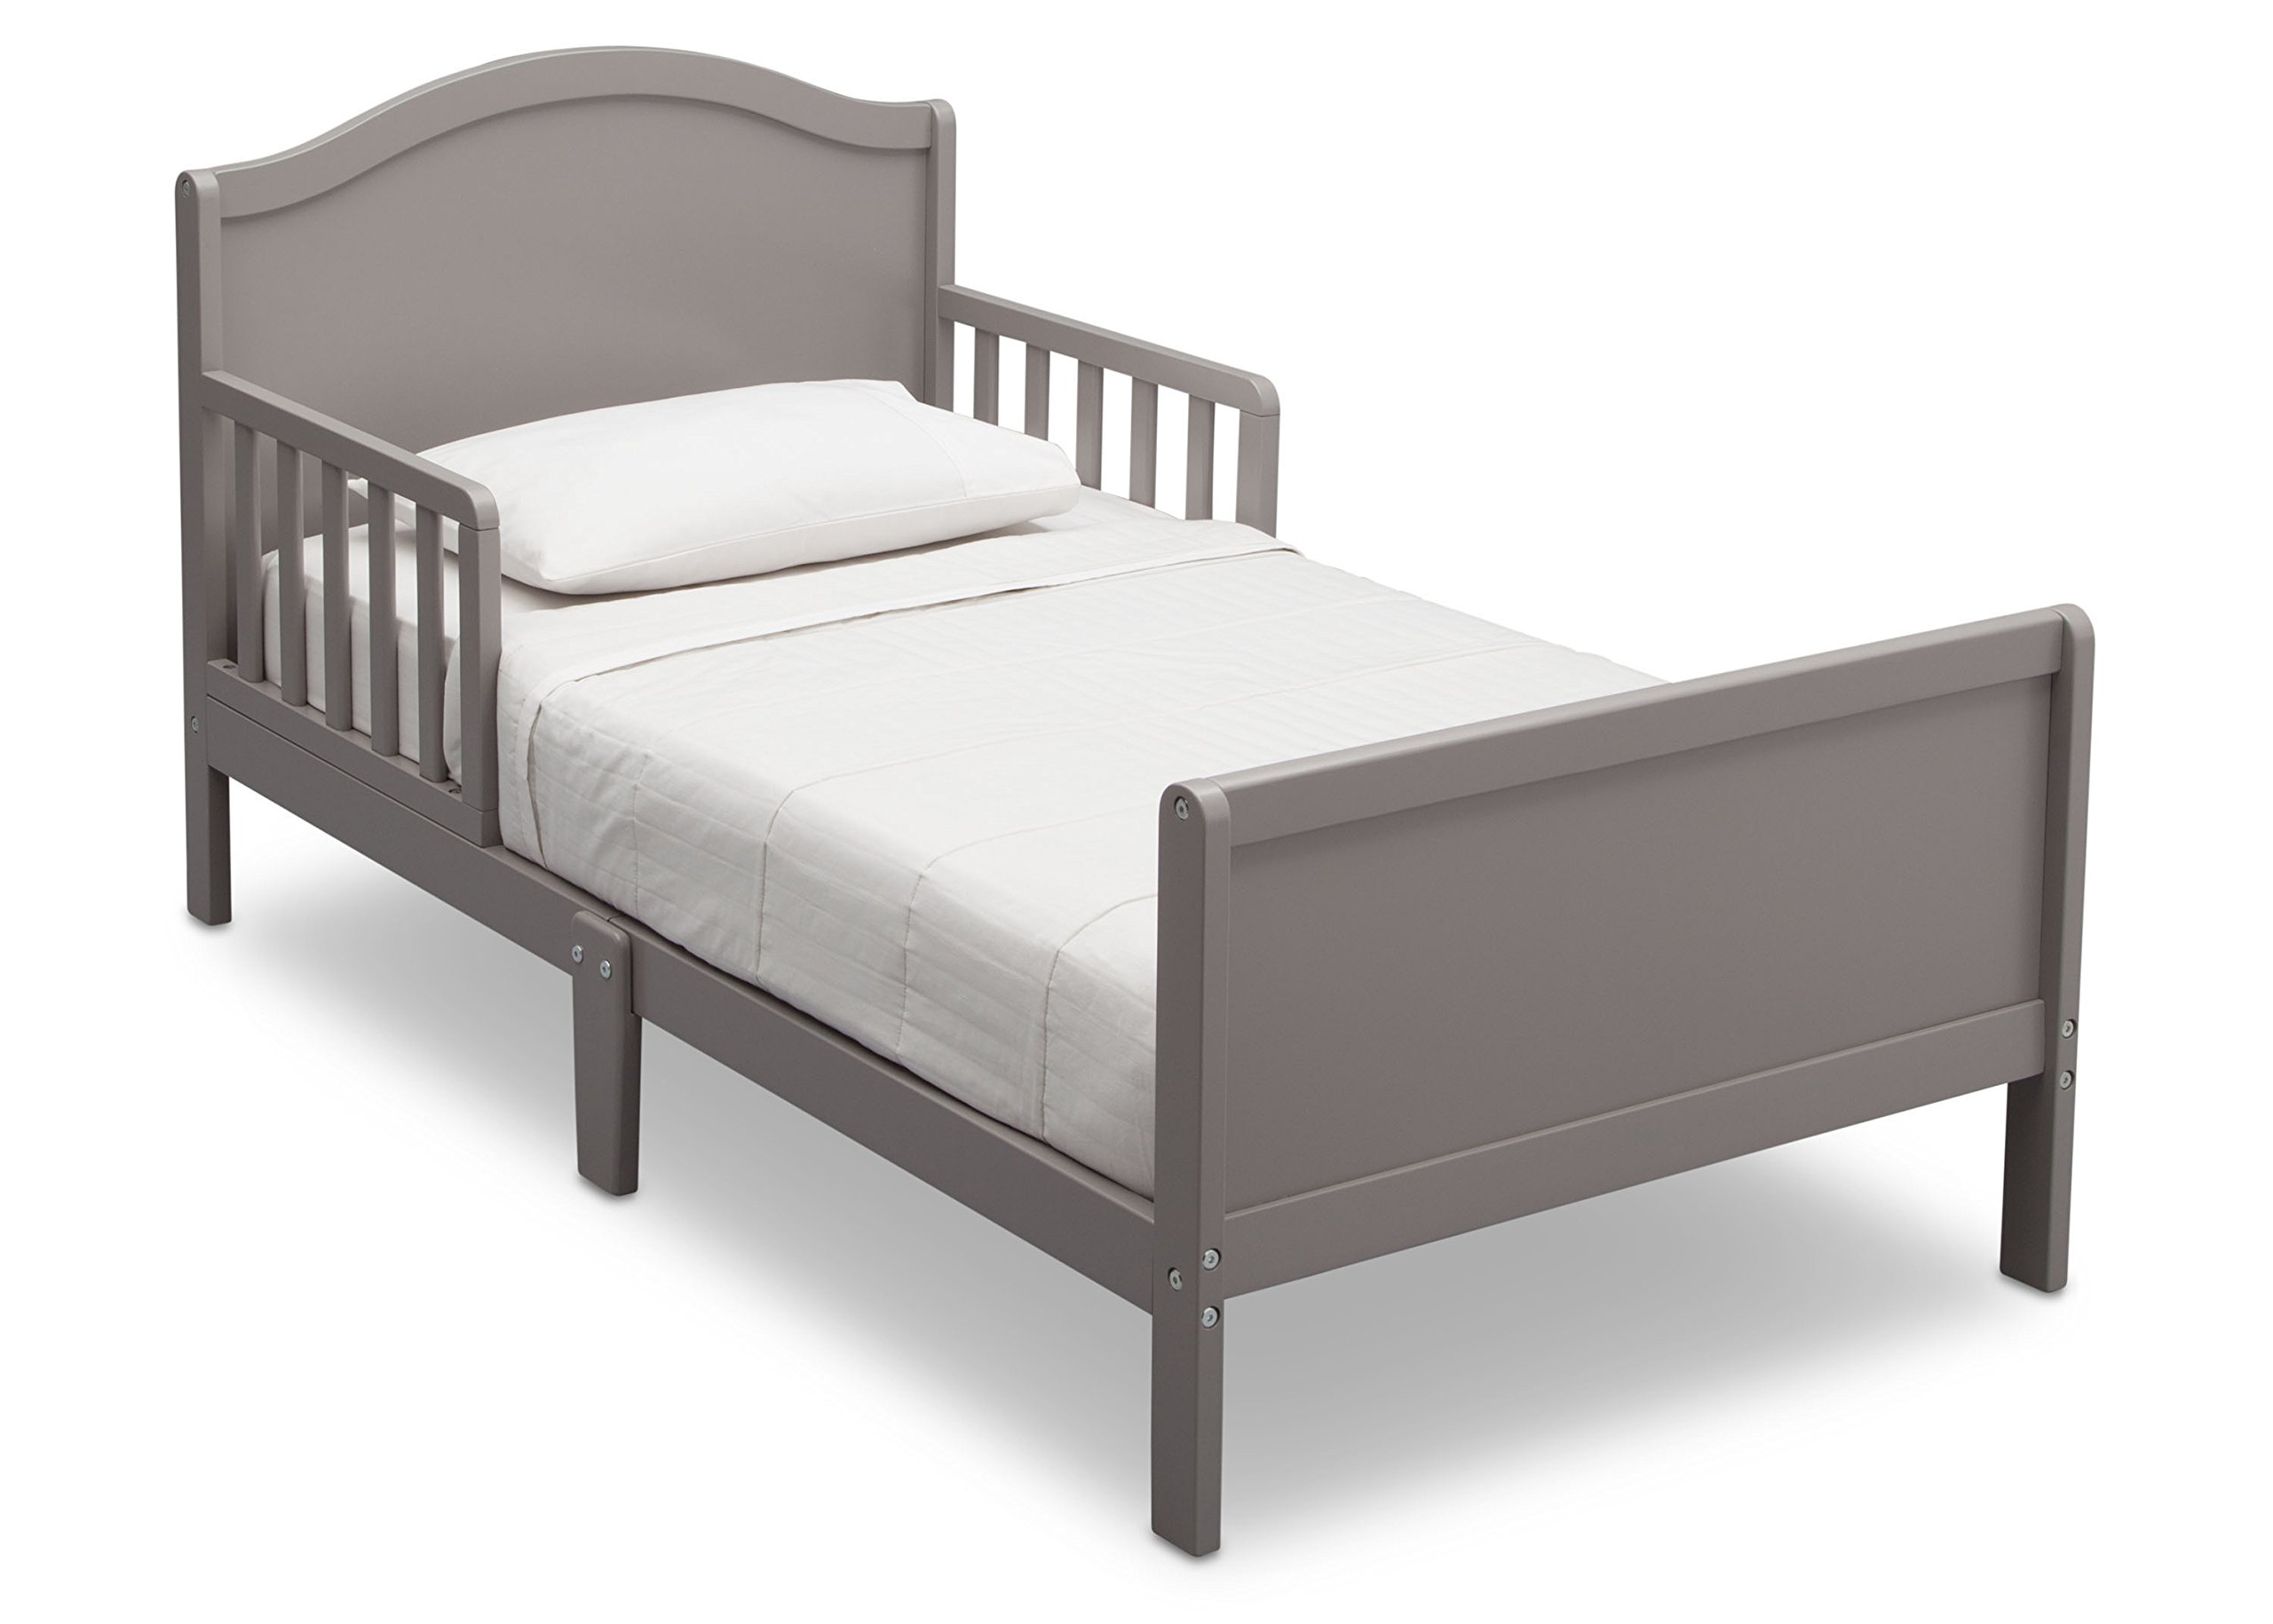 Delta Children Bennett Toddler Bed, Grey by Delta Children